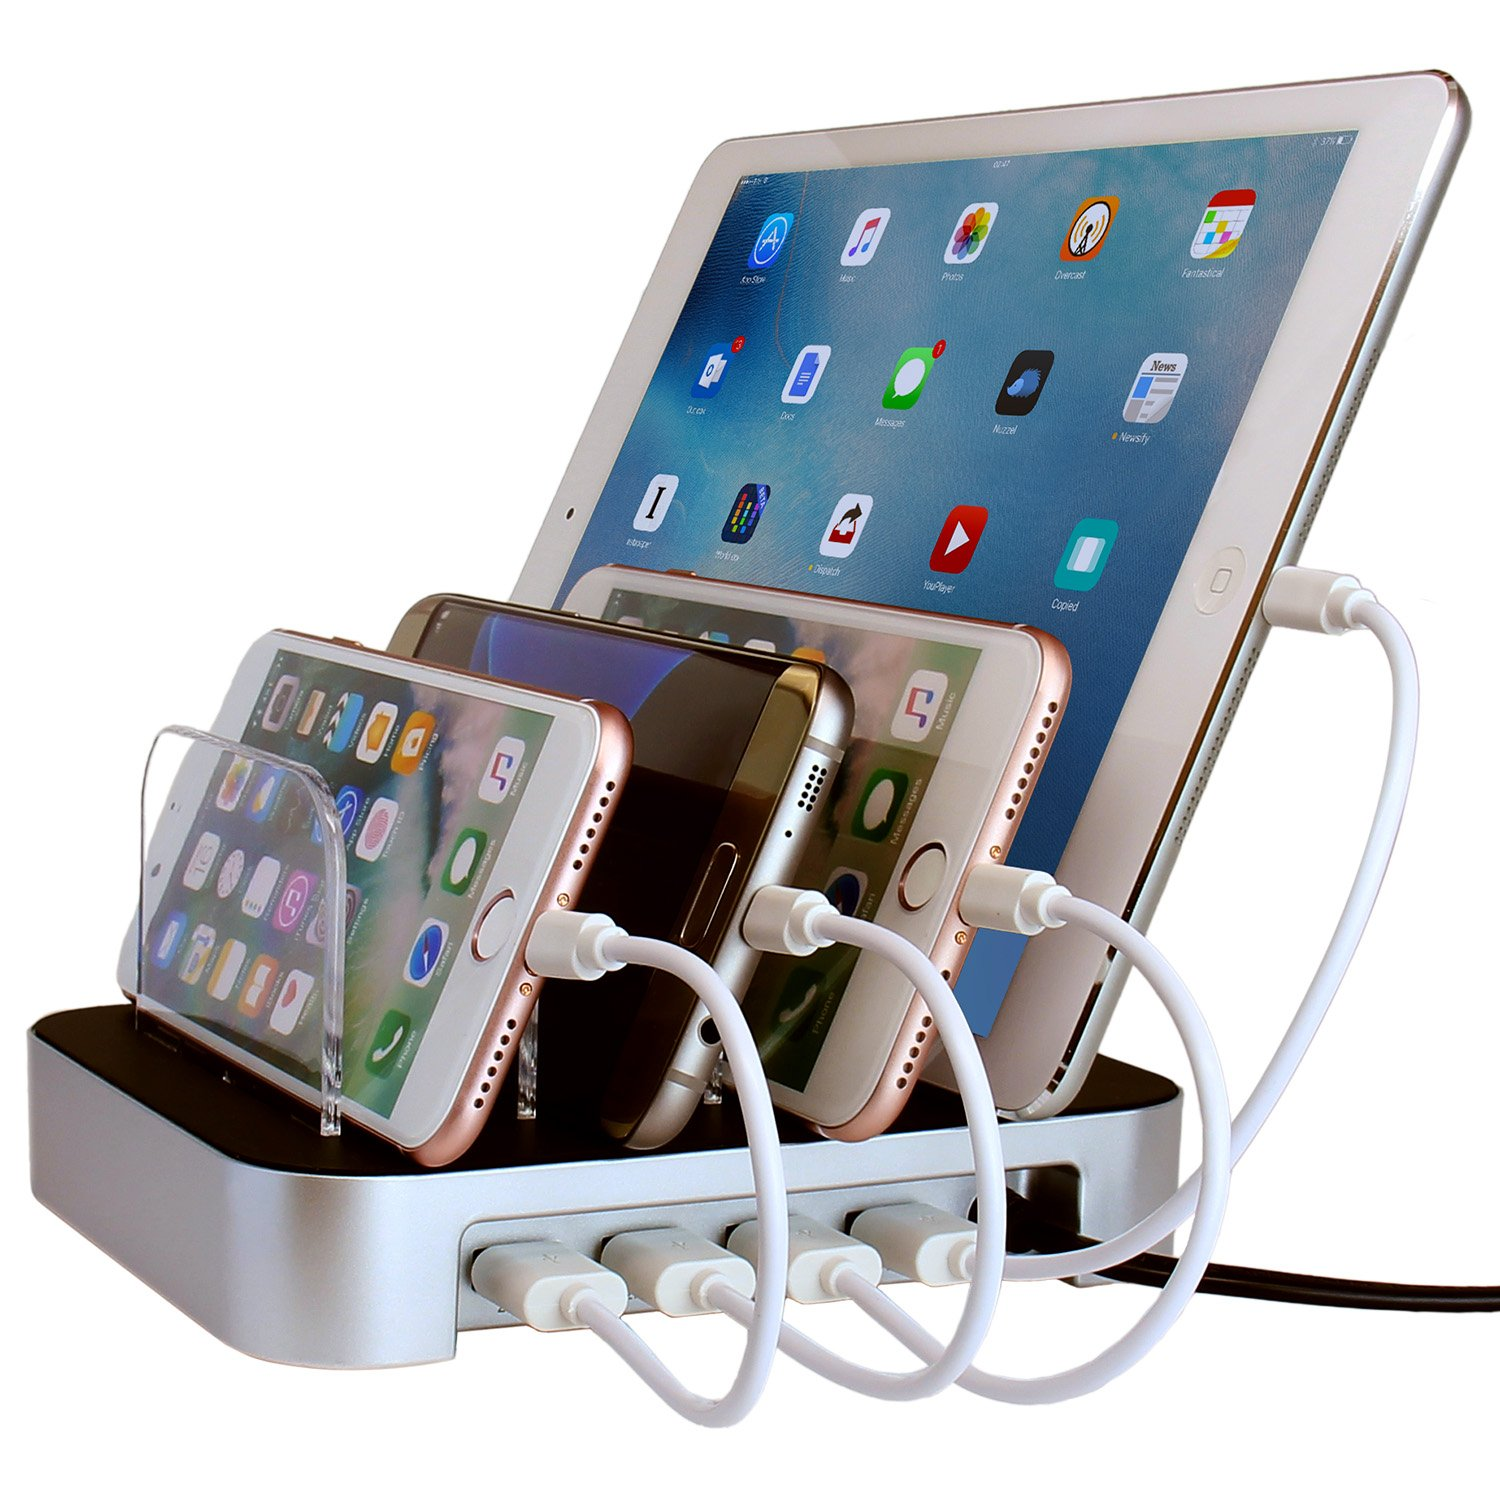 Lovely Amazon.com: Simicore USB Charging Station Dock U0026 Charging Stand Organizer  For Smartphones, Tablets U0026 Other Gadgets U2013 Multiple USB Charger Station U0026  Cell ...